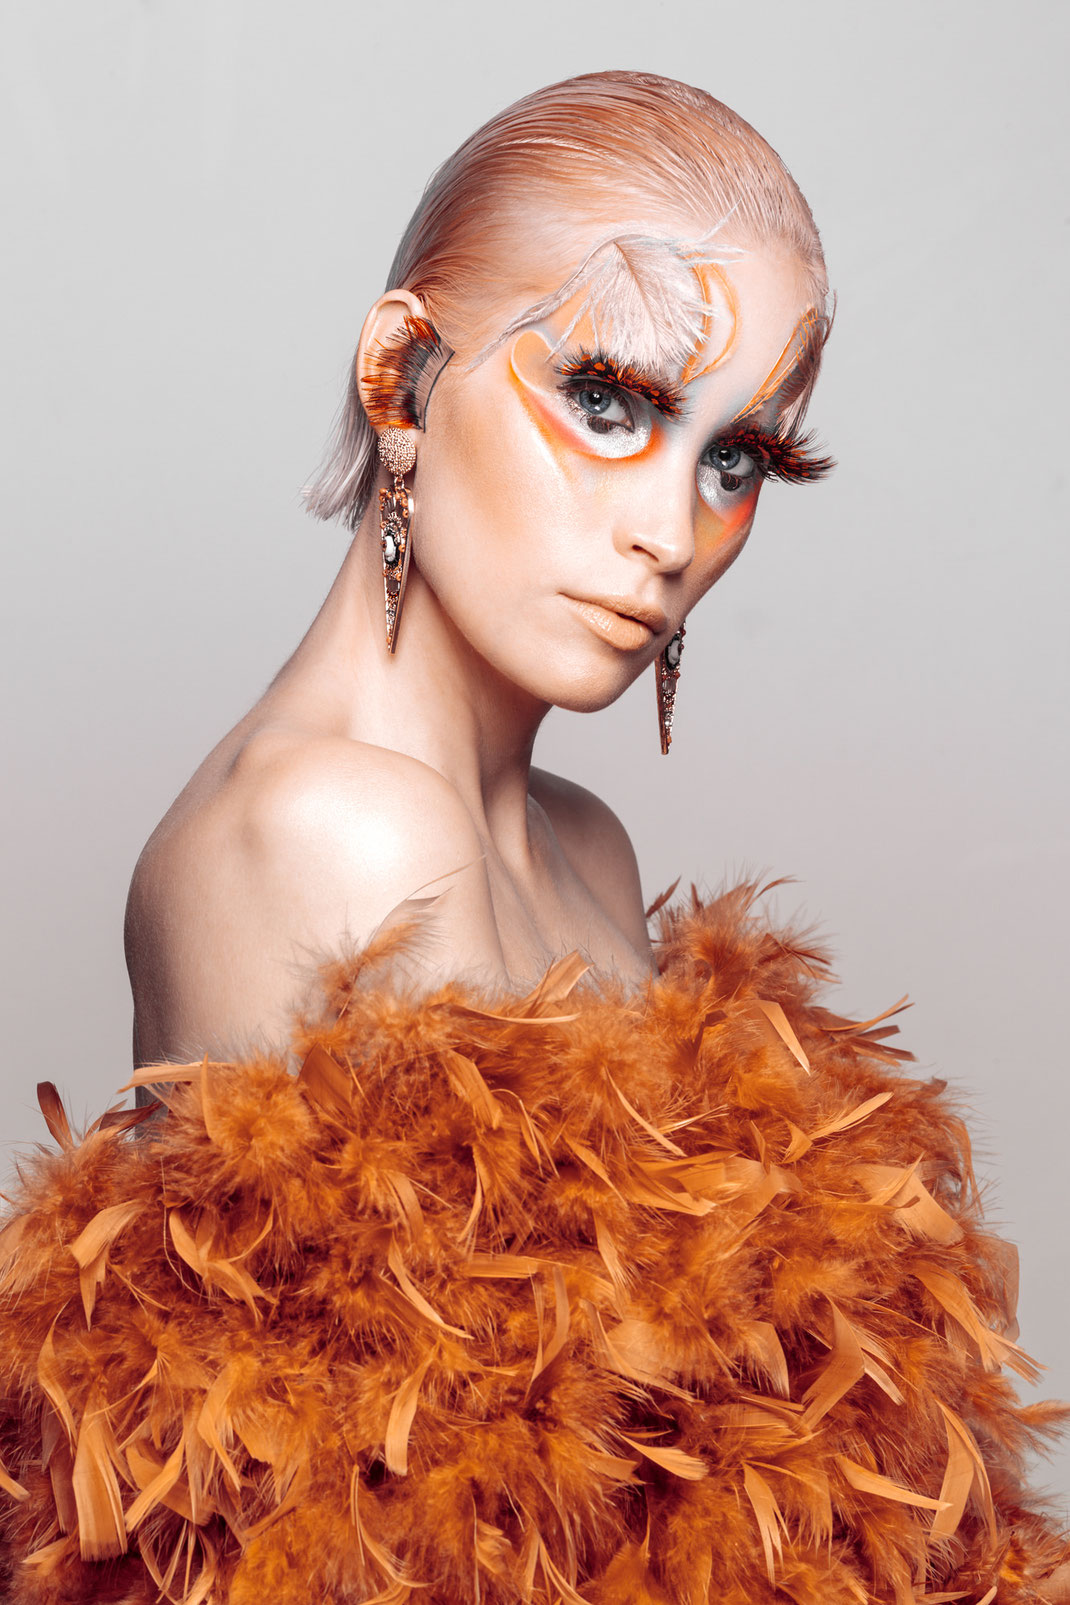 Parrot - Jane - Markus Hertzsch - Visa - Makeup - Fashion - Model - Girl - Portrait - Earrings - Bird - Feather - Art